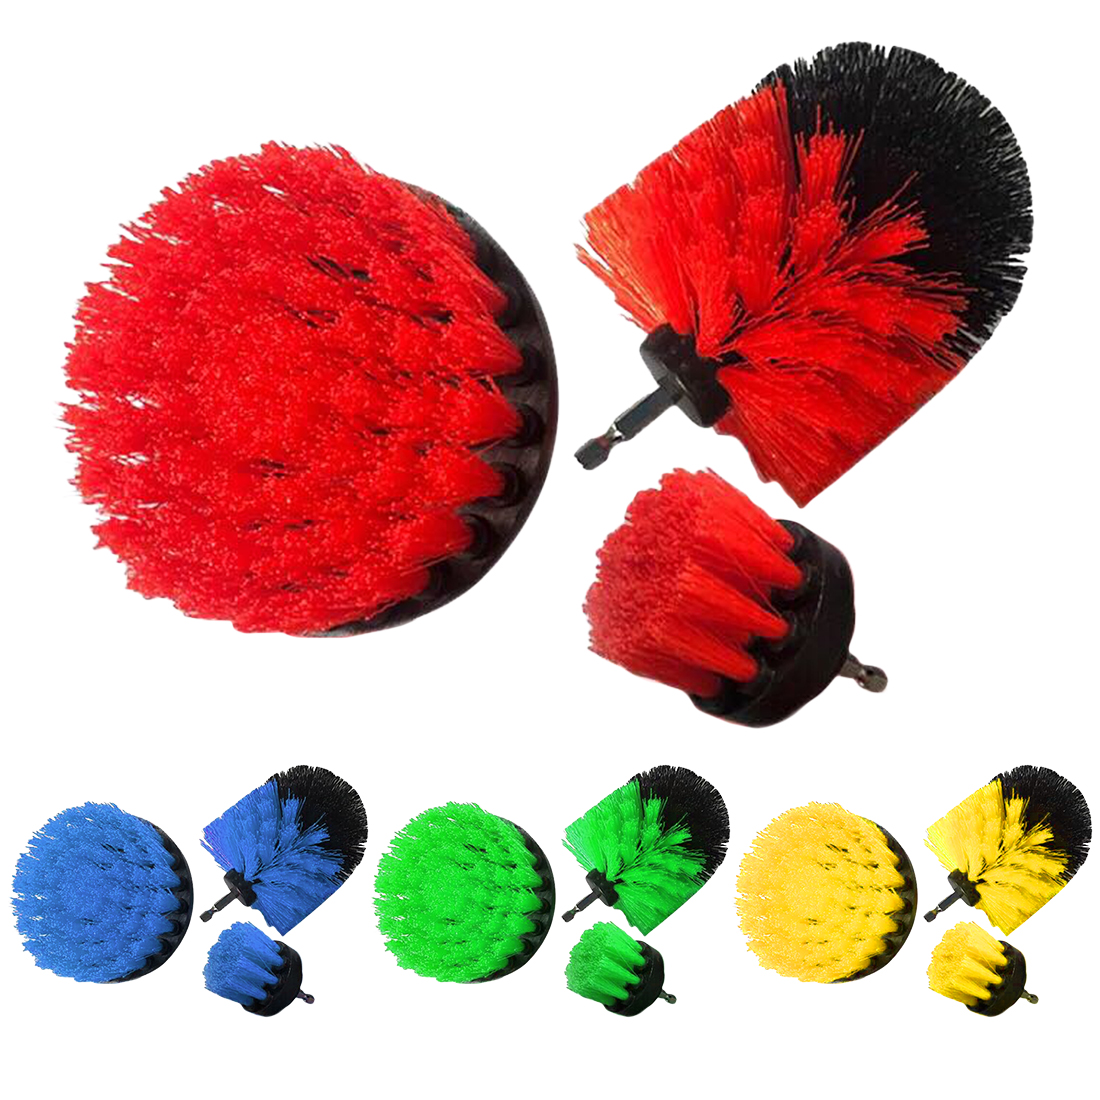 3pcs/set 2/3.5/4inch Electric Drill Brush Kit Tile Grout Scrubber Cleaning Drill Nylon Brushes Tub Cleaner Kit Polishing Tool недорого